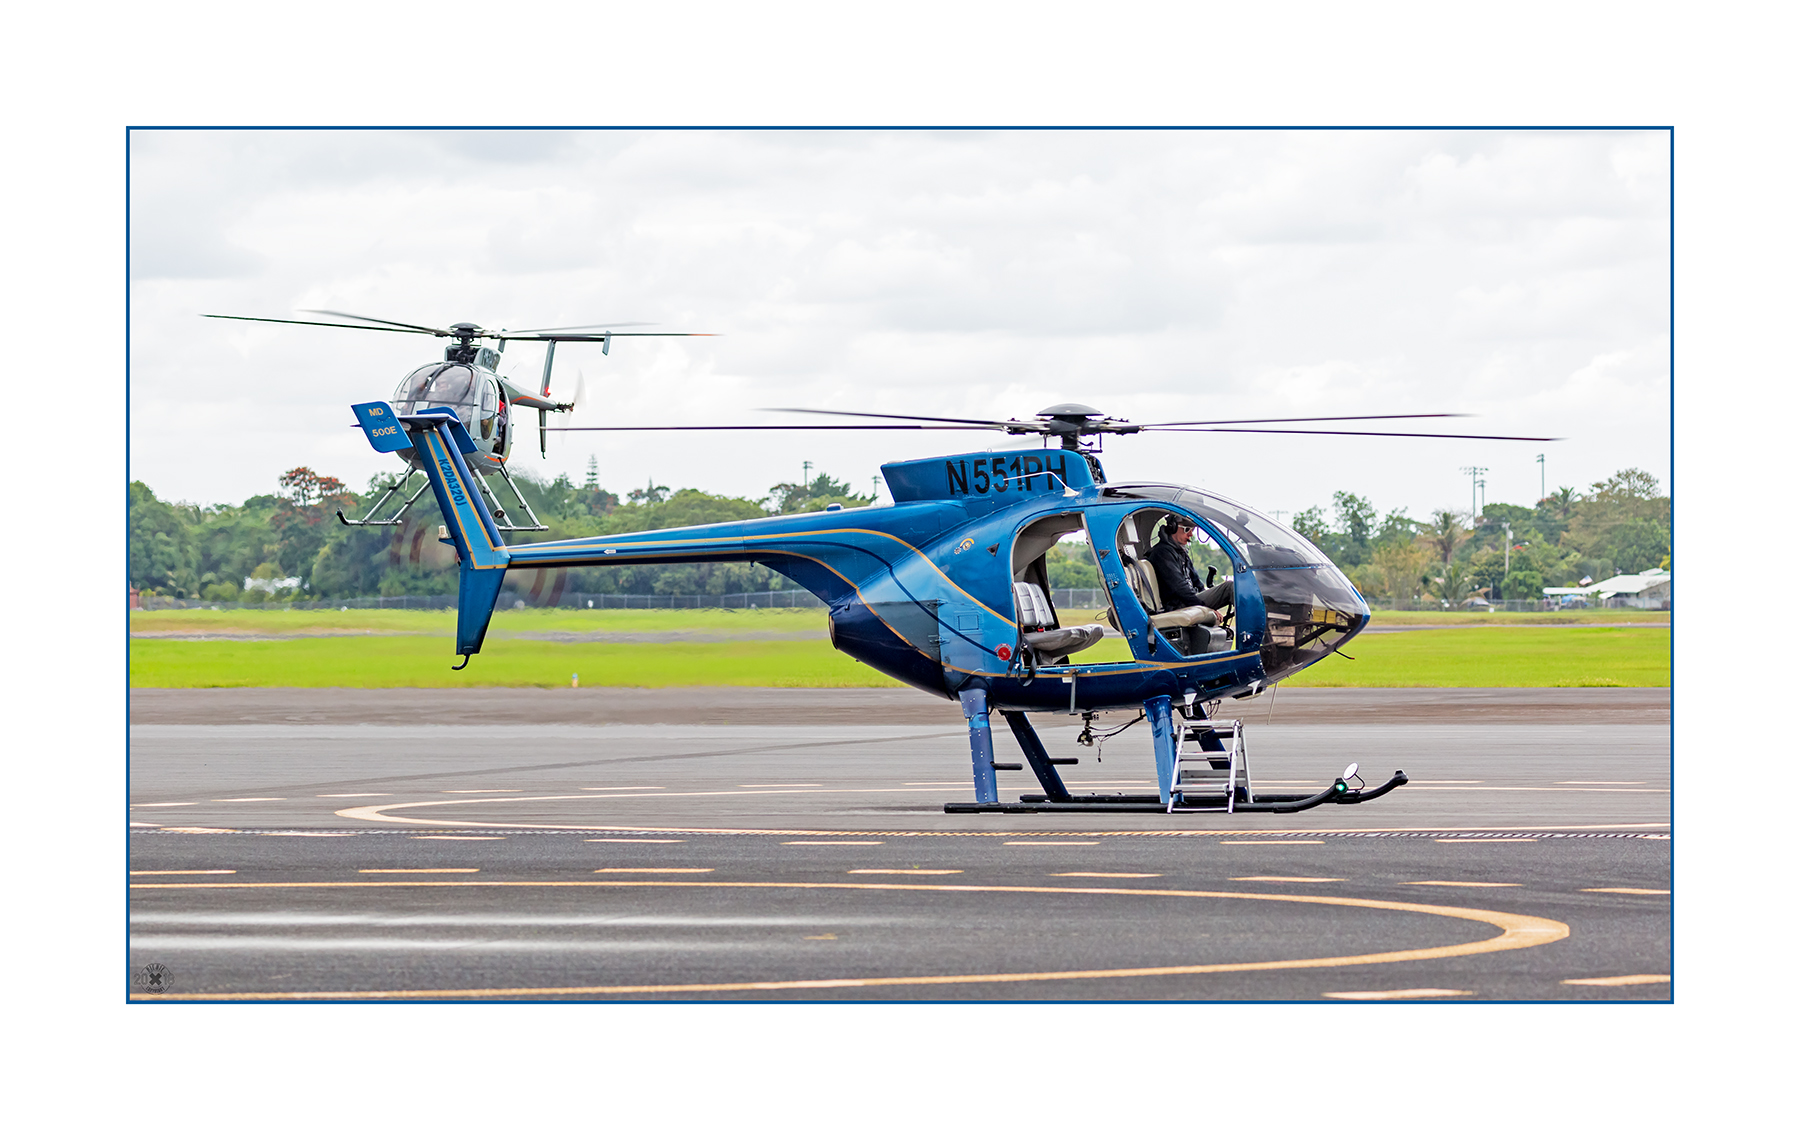 Hughes MD500E N551PH Paradise Helicopters